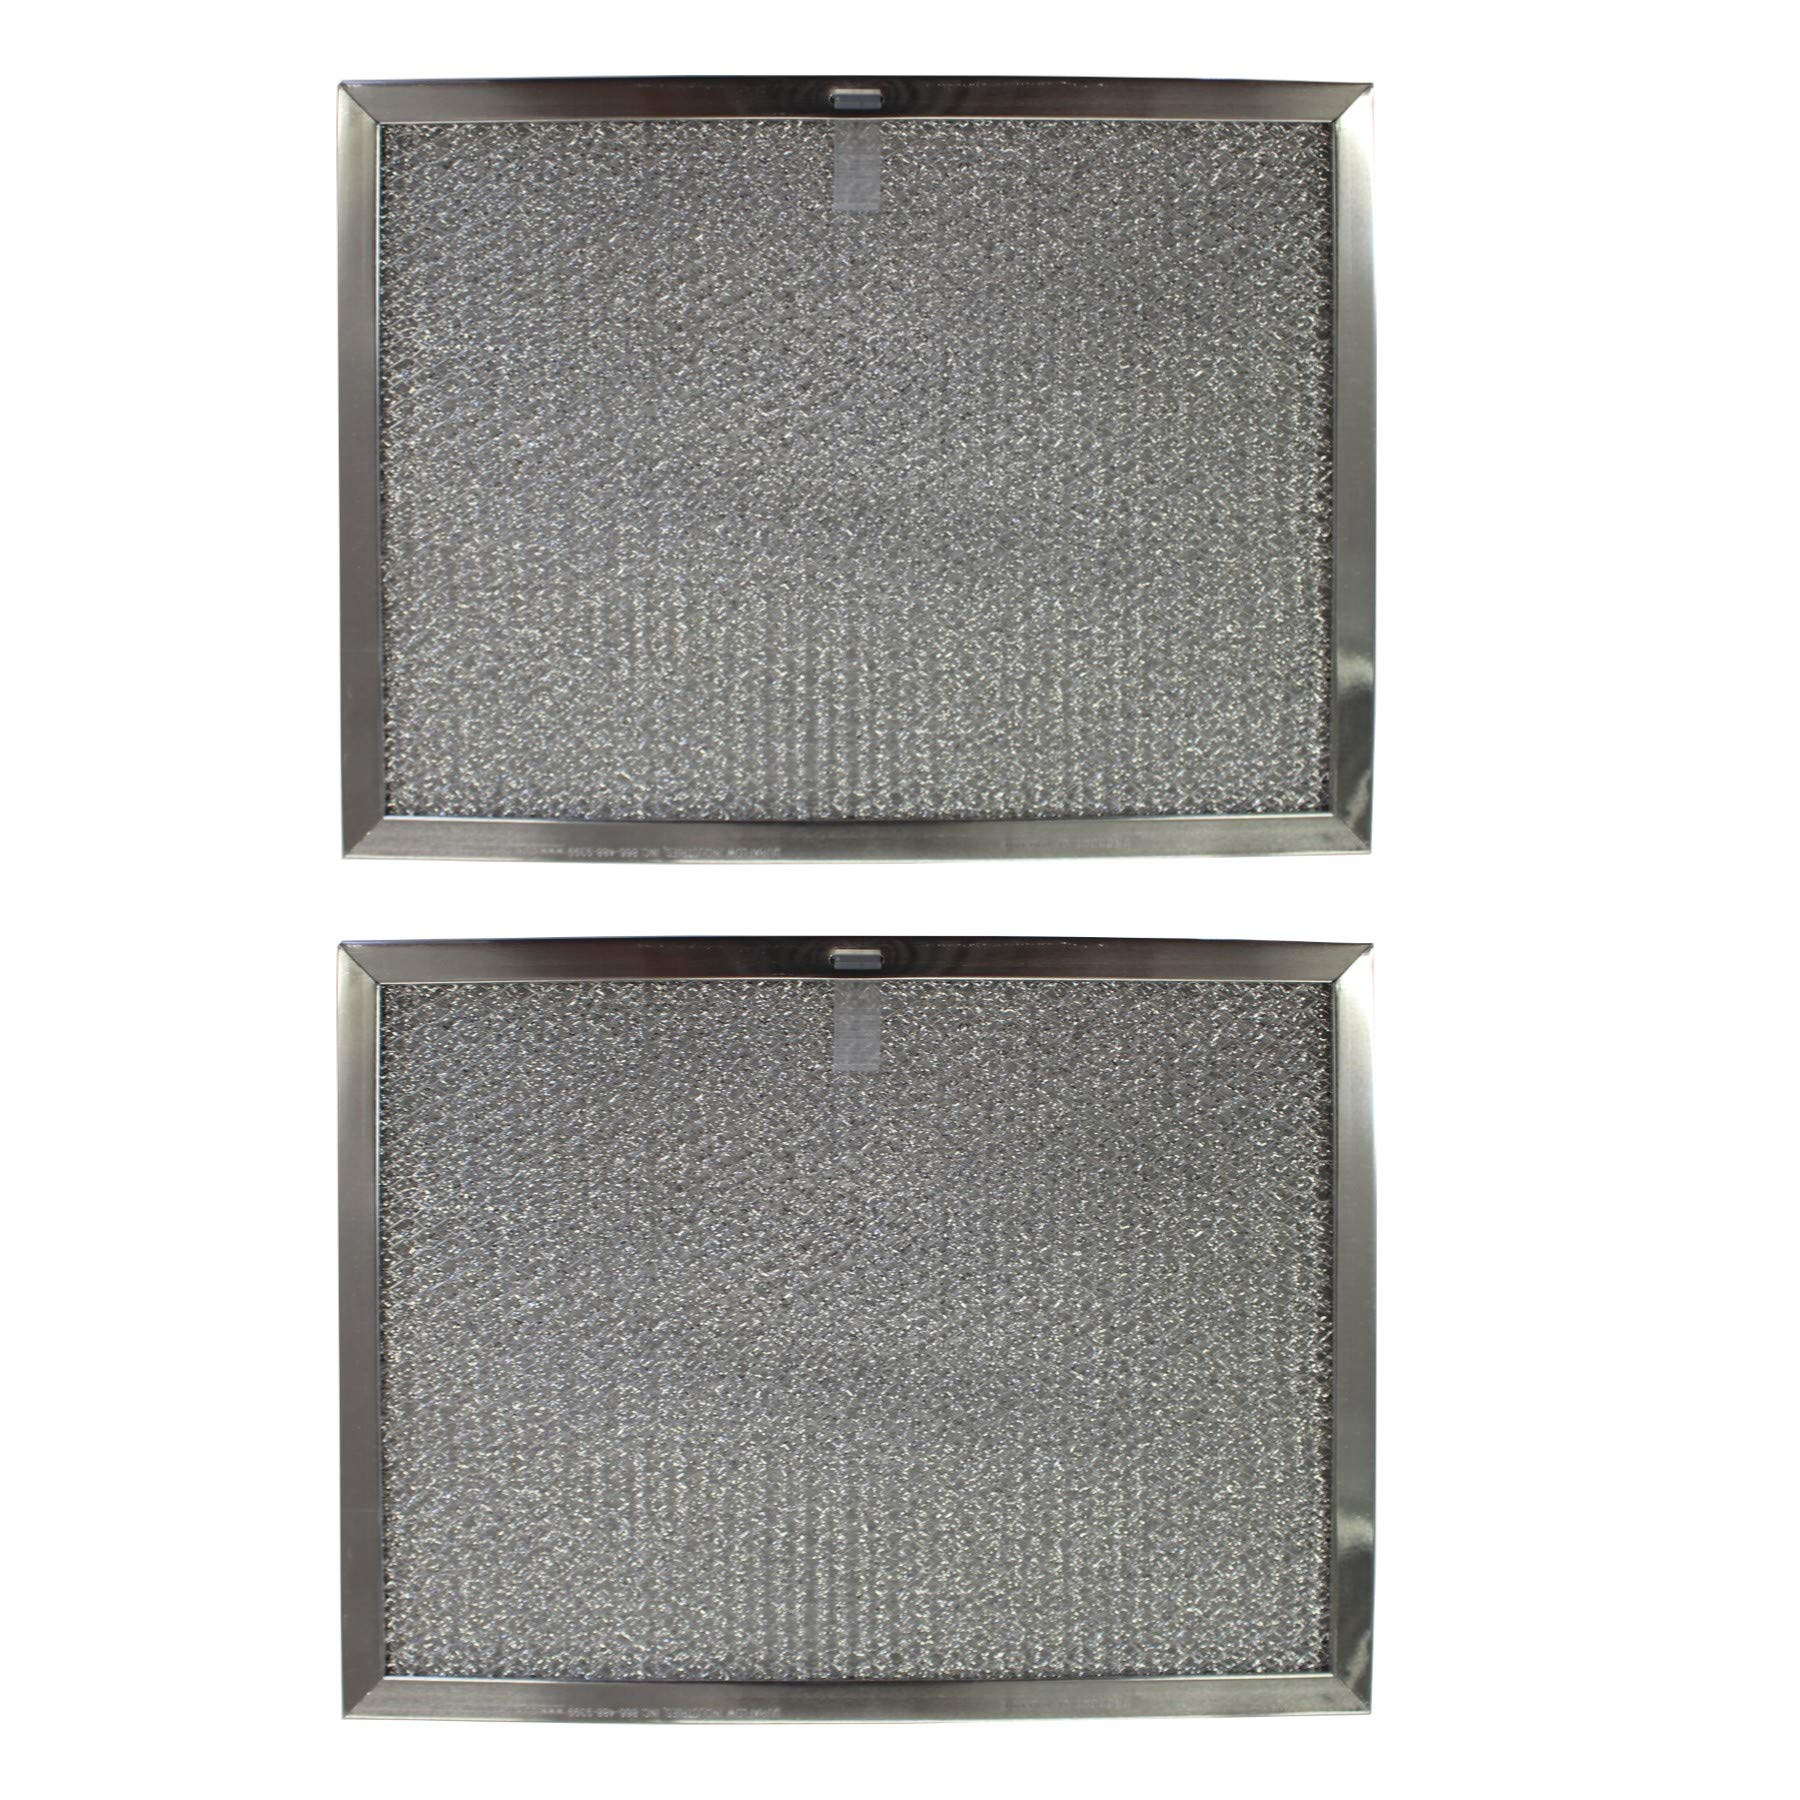 Replacement Aluminum Filters Compatible with Broan 97013159, Broan 97013160, Broan 97013162, Sears/K